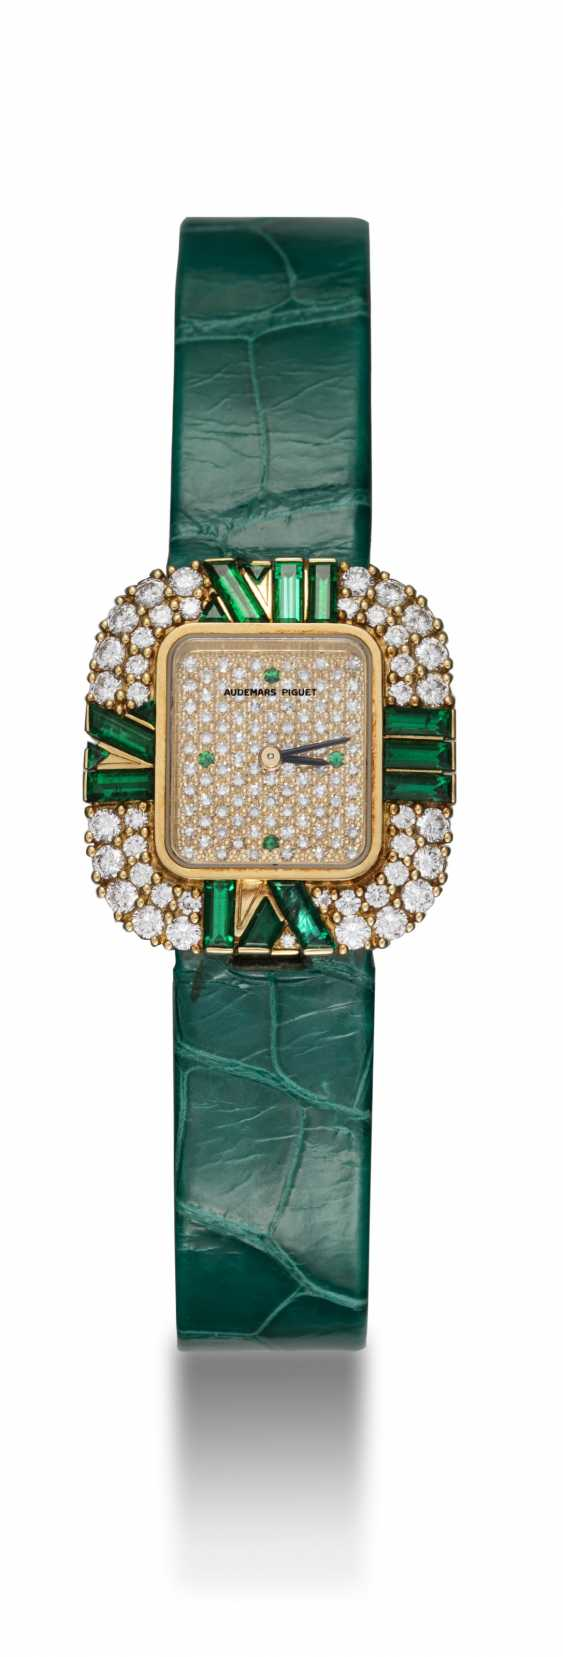 AUDEMARS PIGUET, A LADIES GOLD WRISTWATCH SET WITH DIAMONDS AND EMERALDS AND A PAVED DIAL  - photo 3